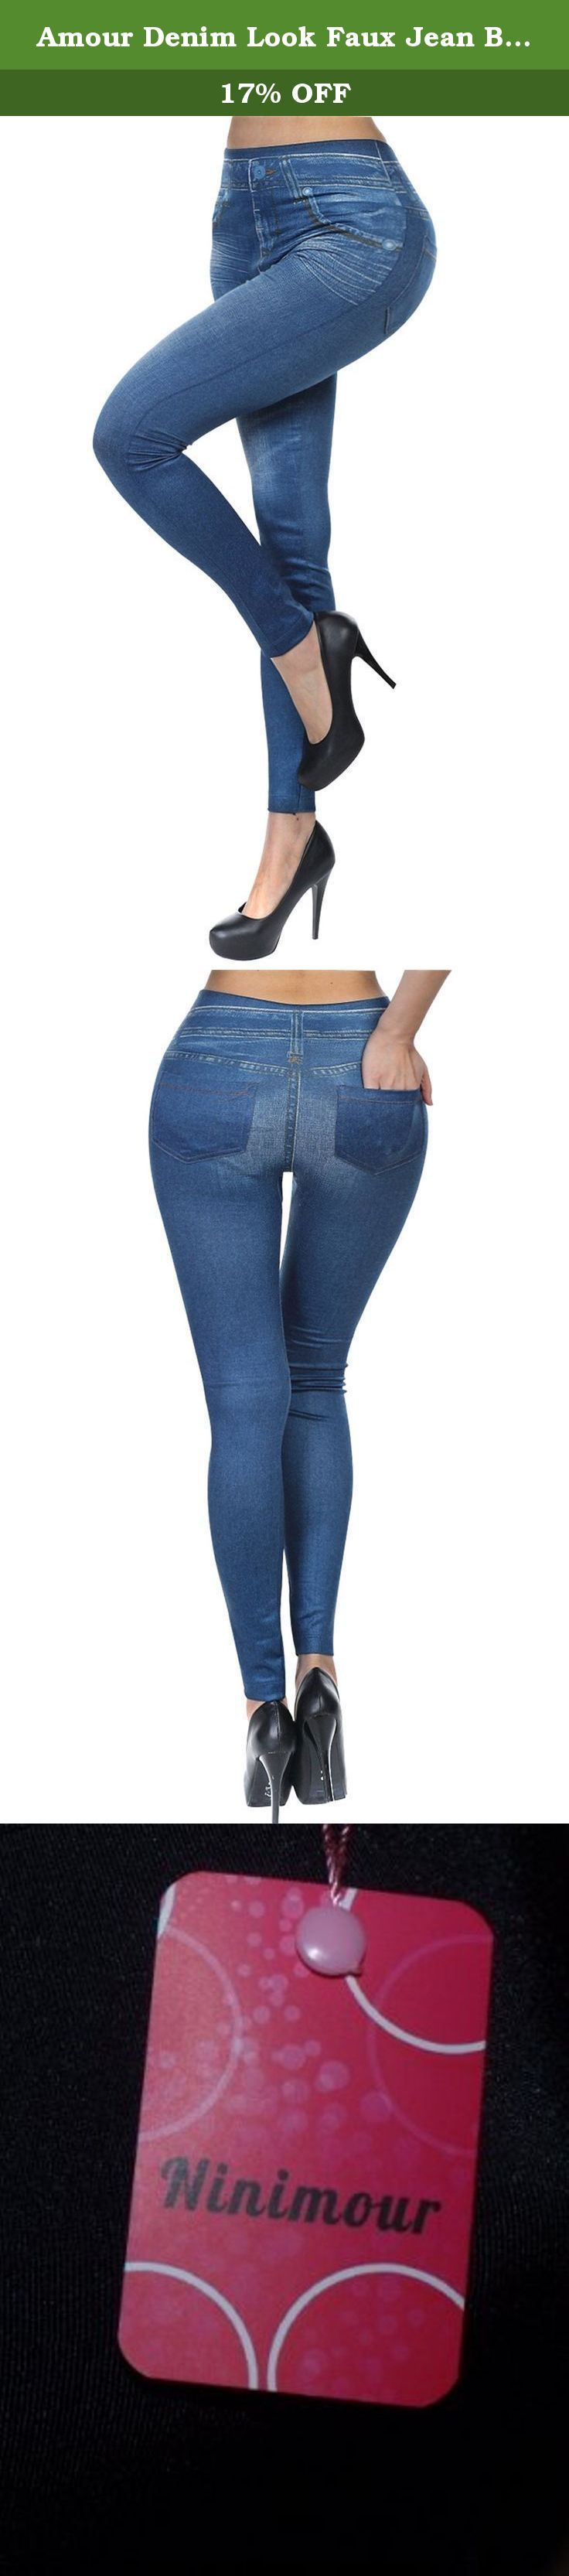 Amour Denim Look Faux Jean Blue Stretchy Leggings Tights Pants Jeggings Trousers (Blue-LT8242). Sexy Denim Look Faux Jean Blue Stretchy Leggings Tights Pants Jegging Description: 100% Brand New. High quality & Comfortable Fabric 93% Polyester 7% Elastan Designed especially for lady and young girls Package included:1* Women's Pants.